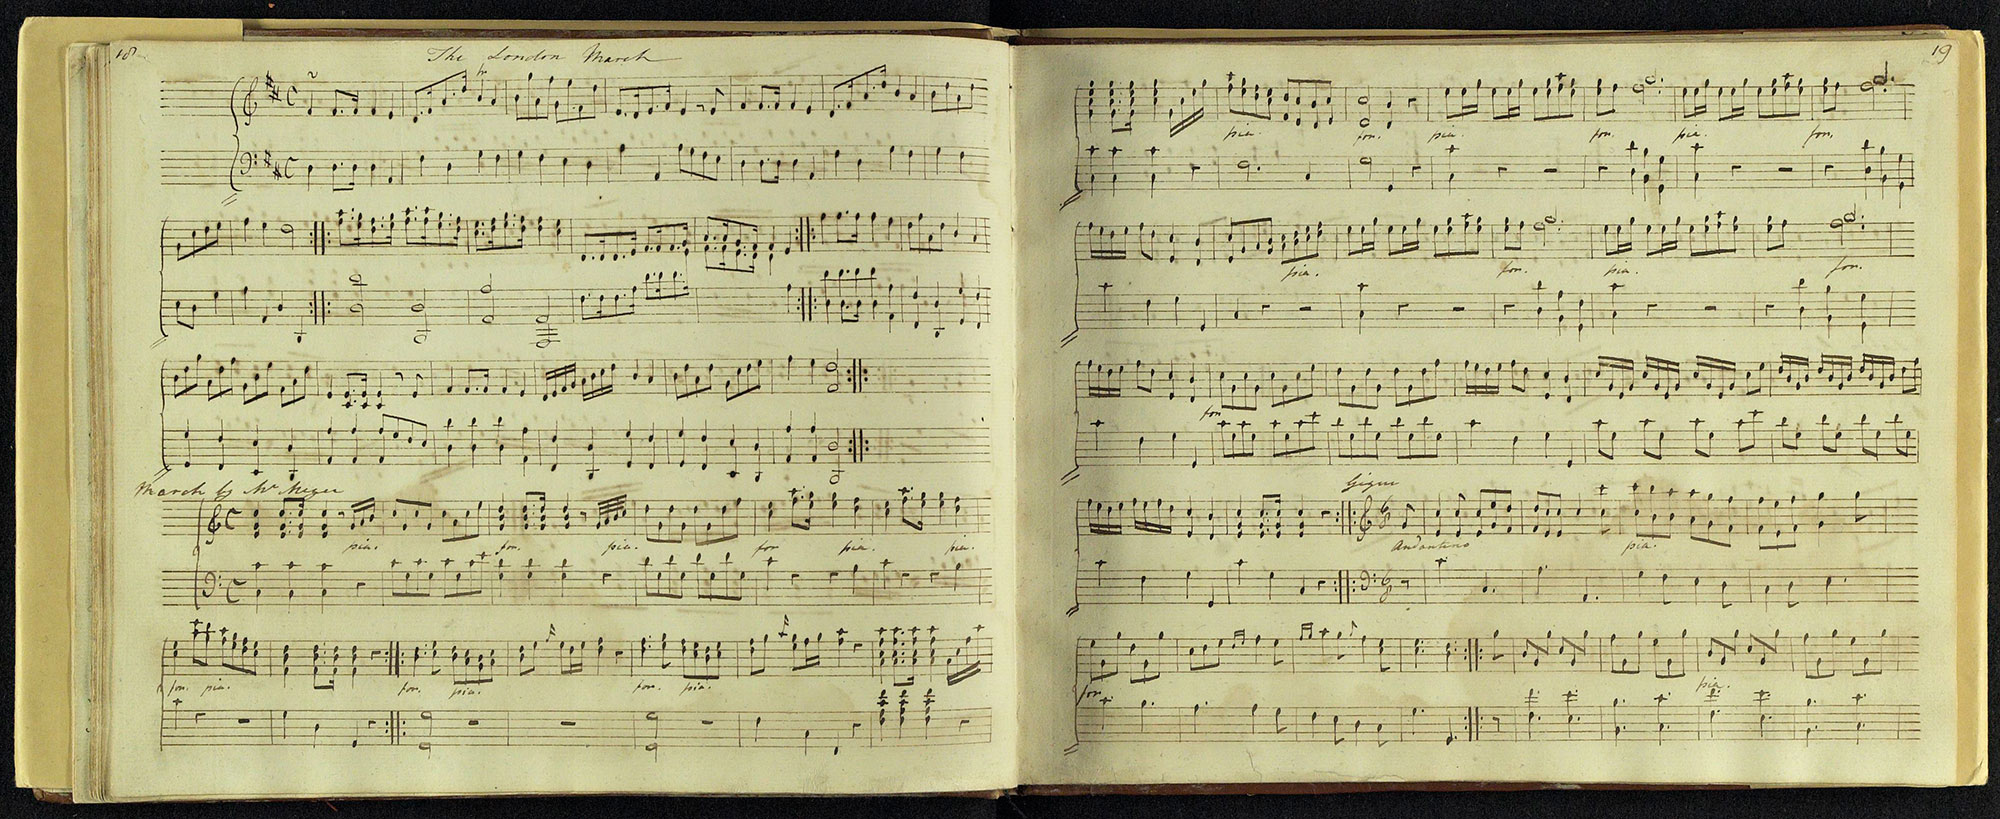 Manuscript music copied by Jane Austen